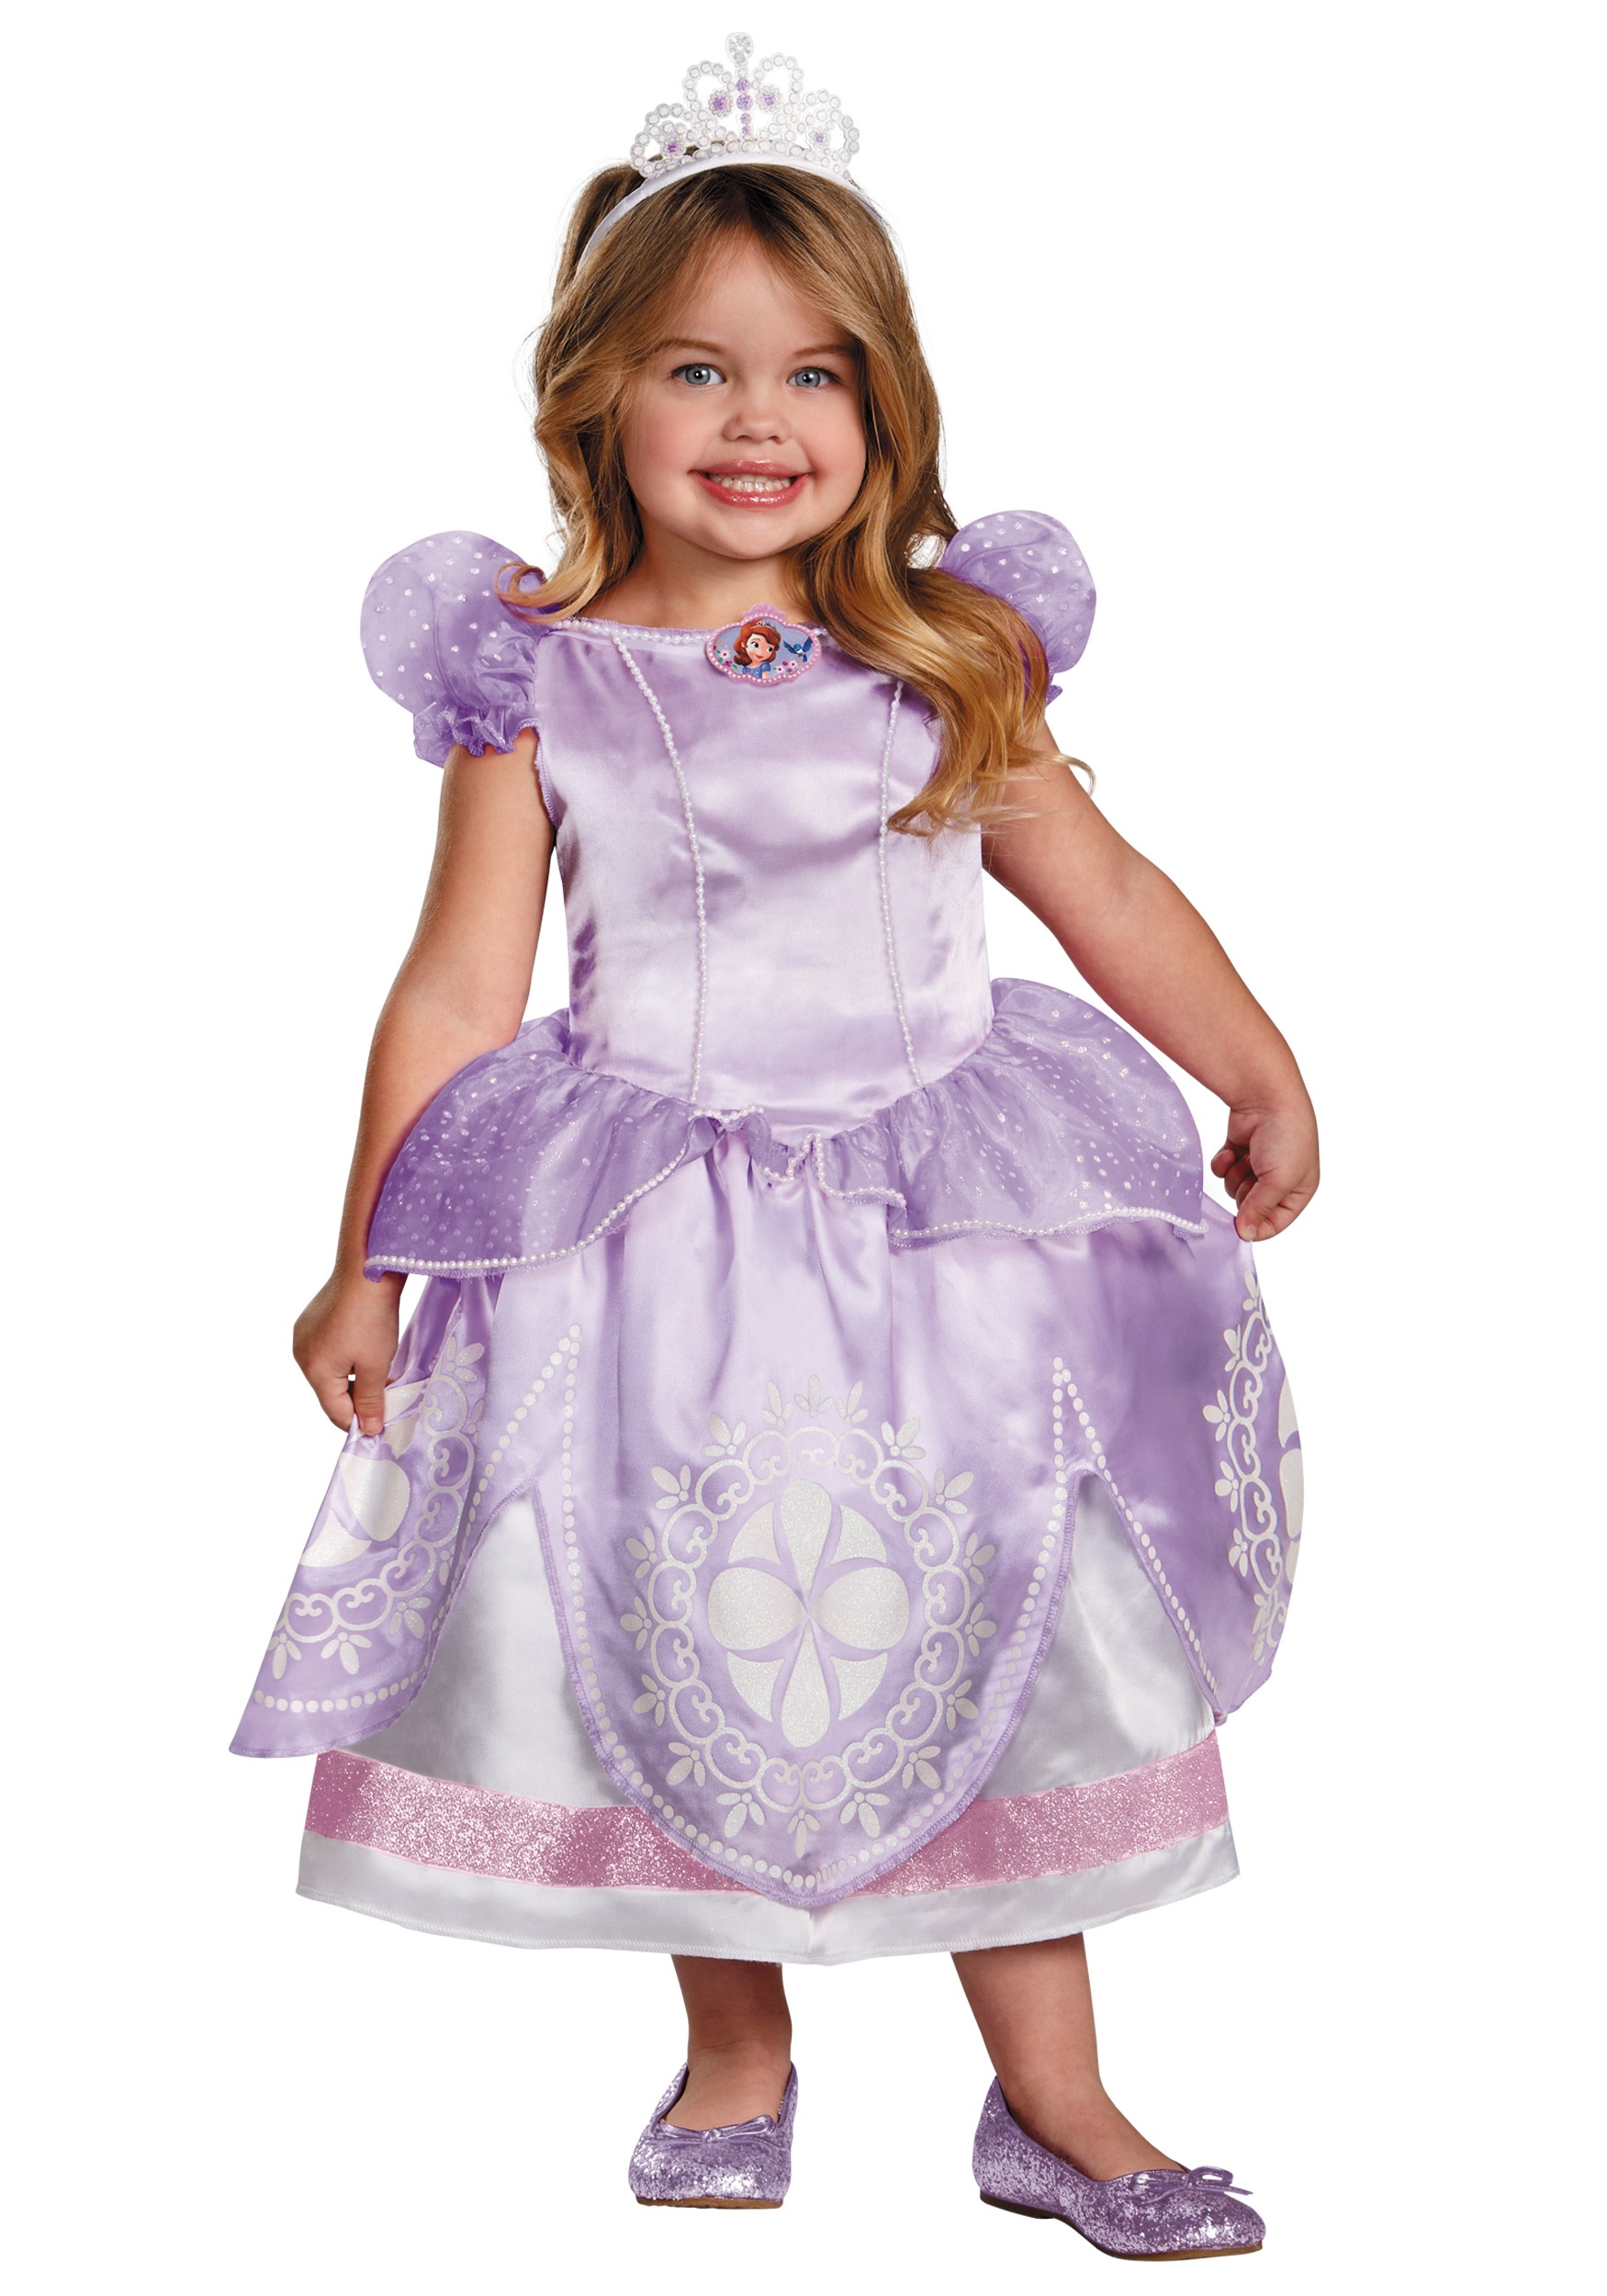 Toddler Sofia the First Deluxe Costume  sc 1 st  Halloween Costumes & Toddler Sofia the First Deluxe Costume - Halloween Costumes